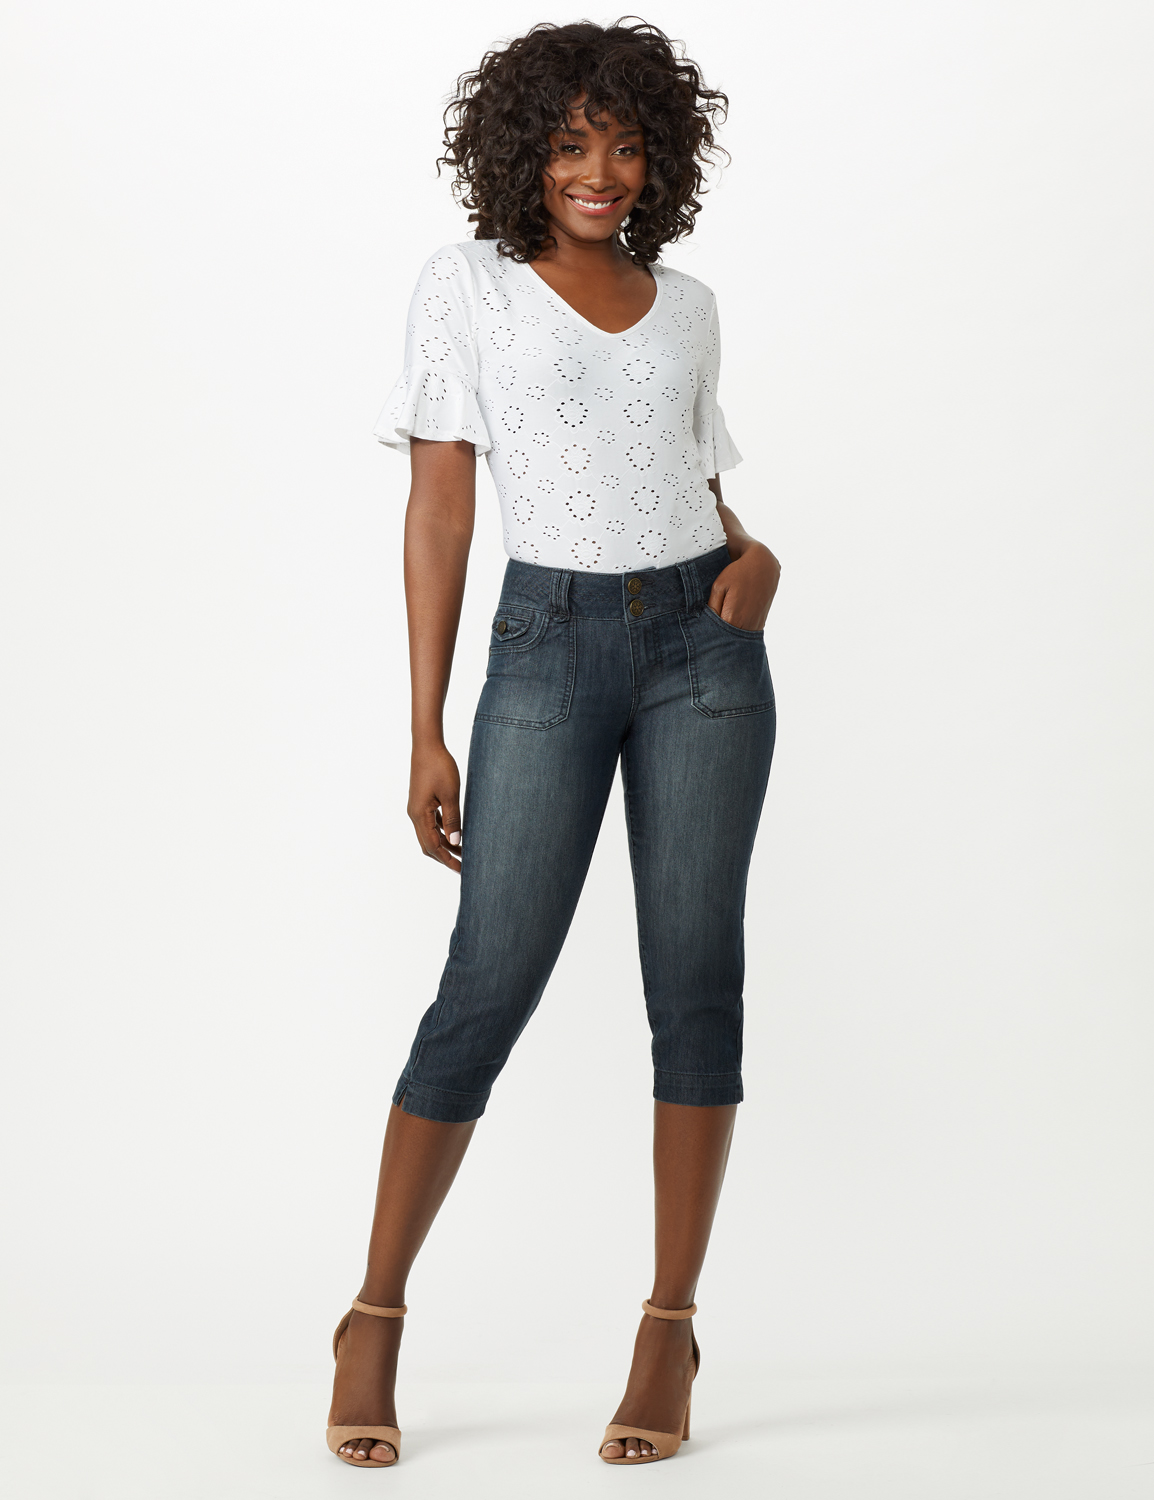 2 Button Capri With Front Pocket and Back Flap Pkts -Riviera Blue Wash - Front